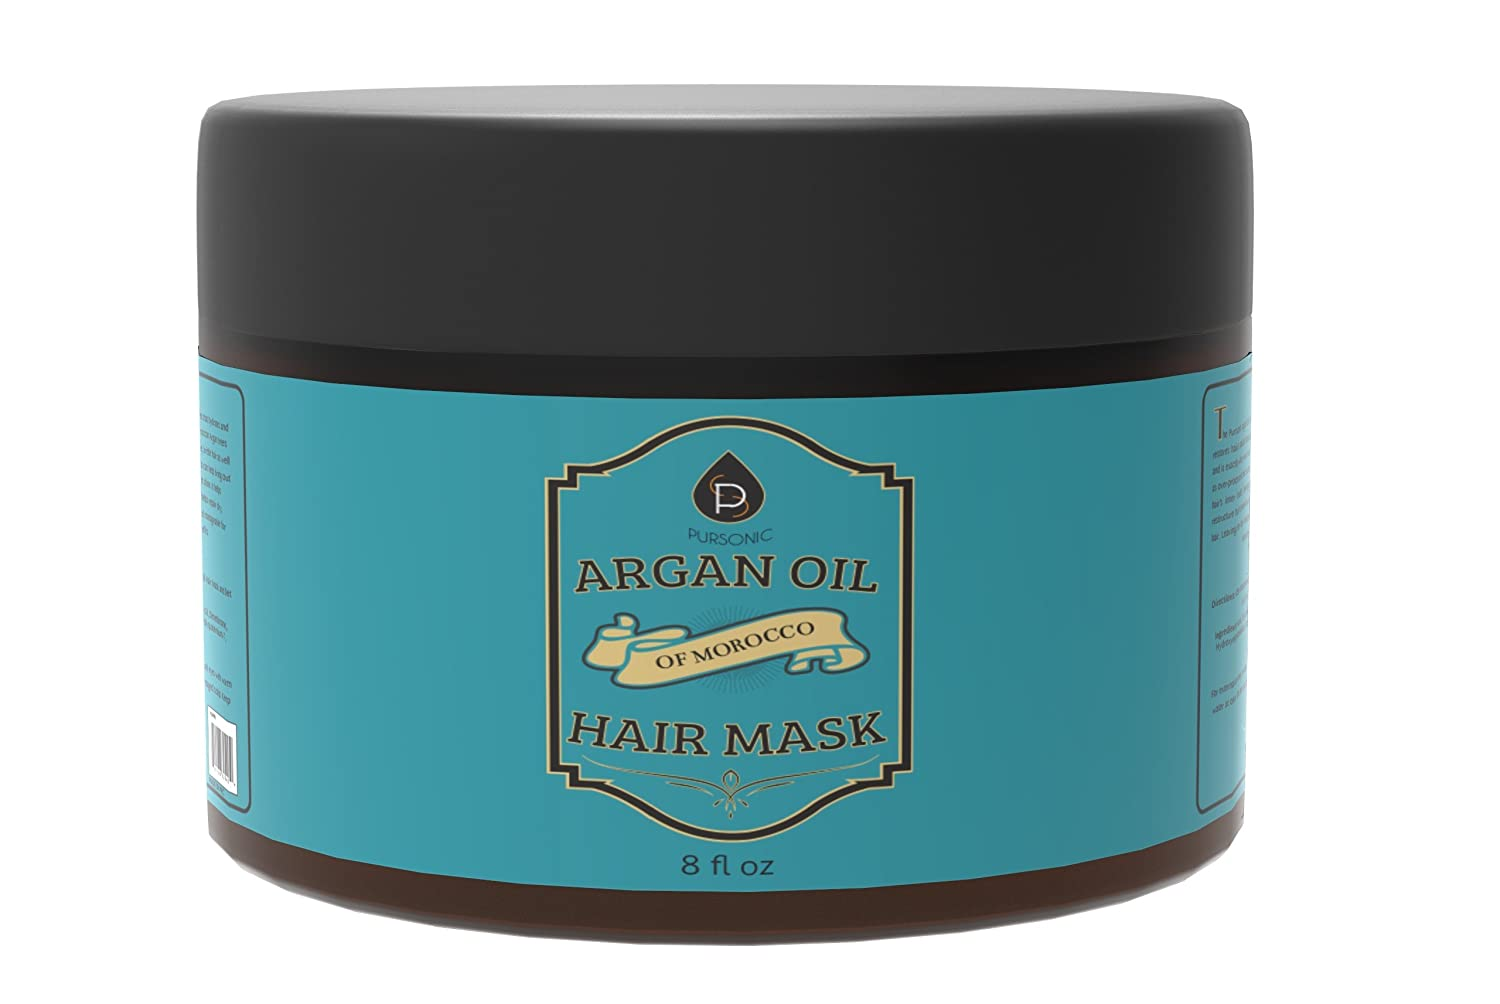 Pursonic Argan Oil Hair Mask of Morocco, 8 Fluid Ounce AOHM8